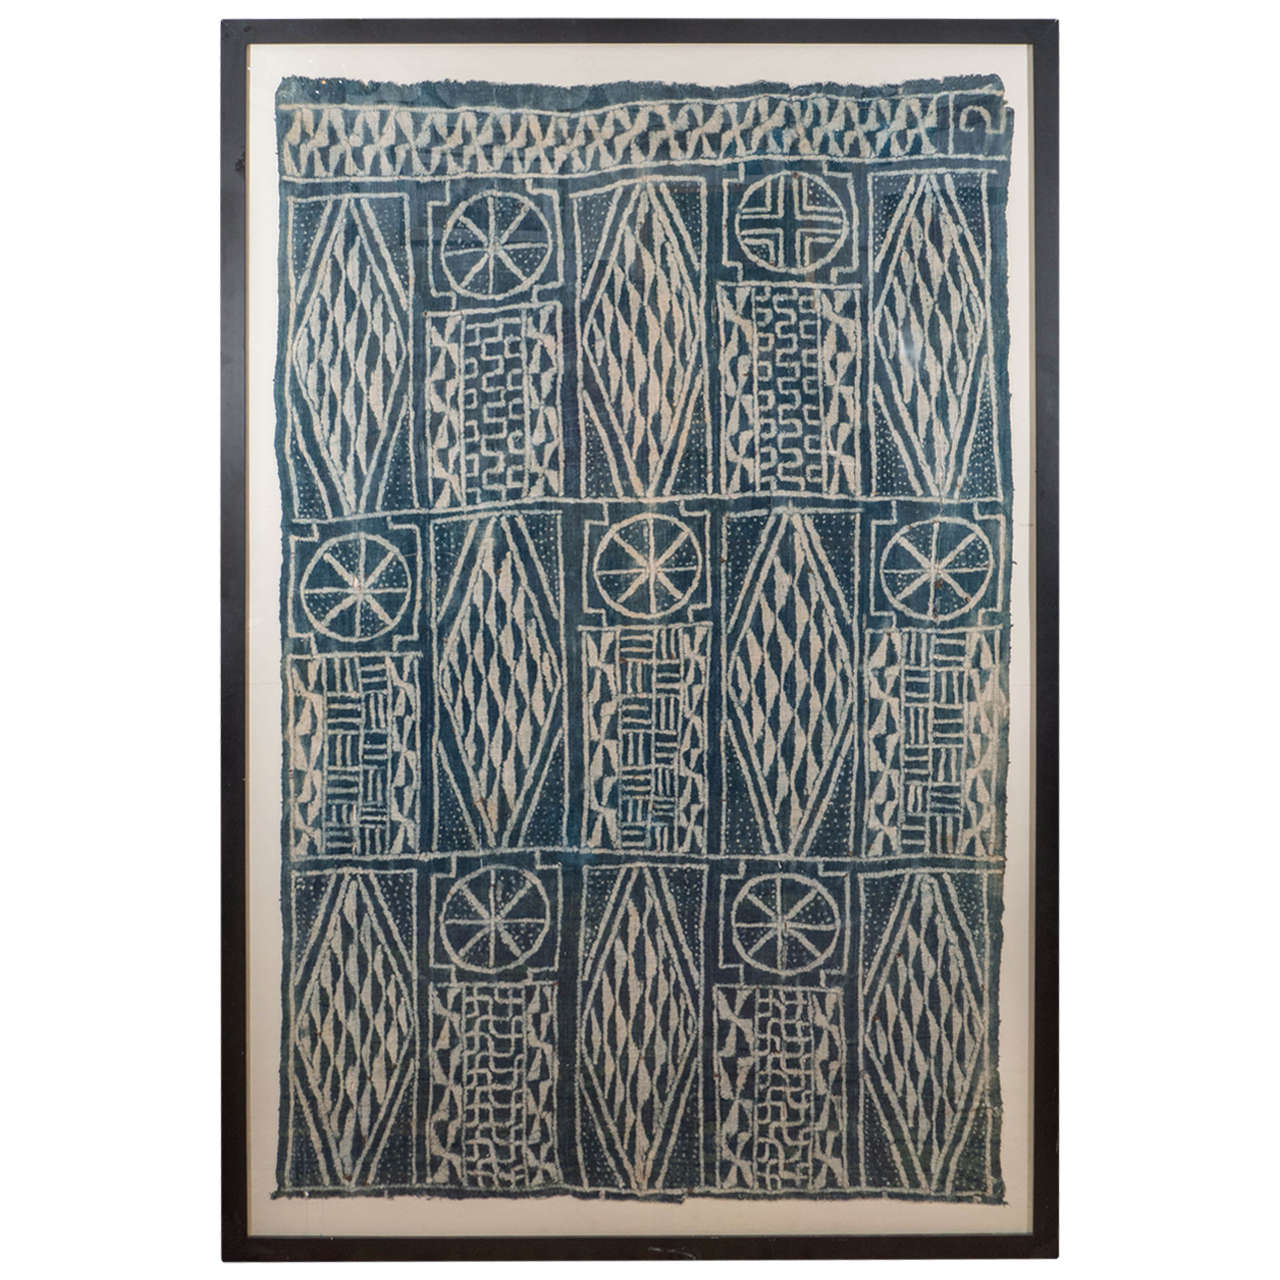 76x51 Framed Cameroon Cloth, $3,500